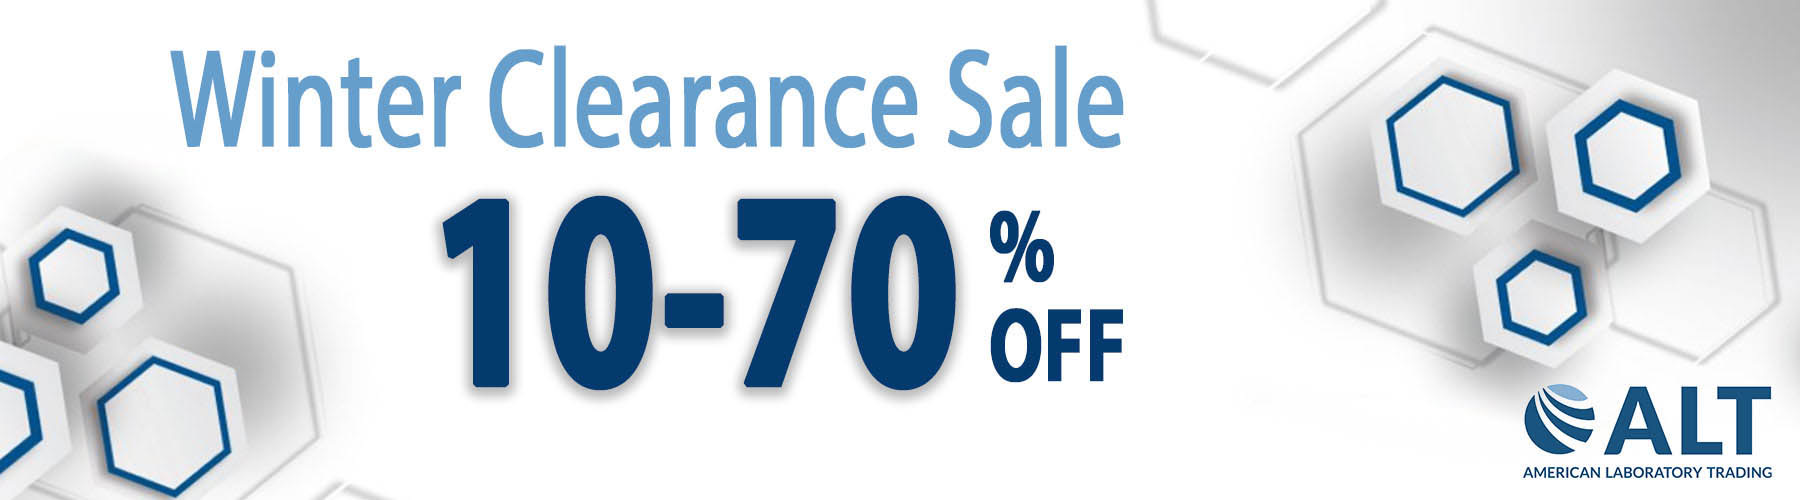 Winter Clearance Sale 10-70% off Lab Equipment! Image